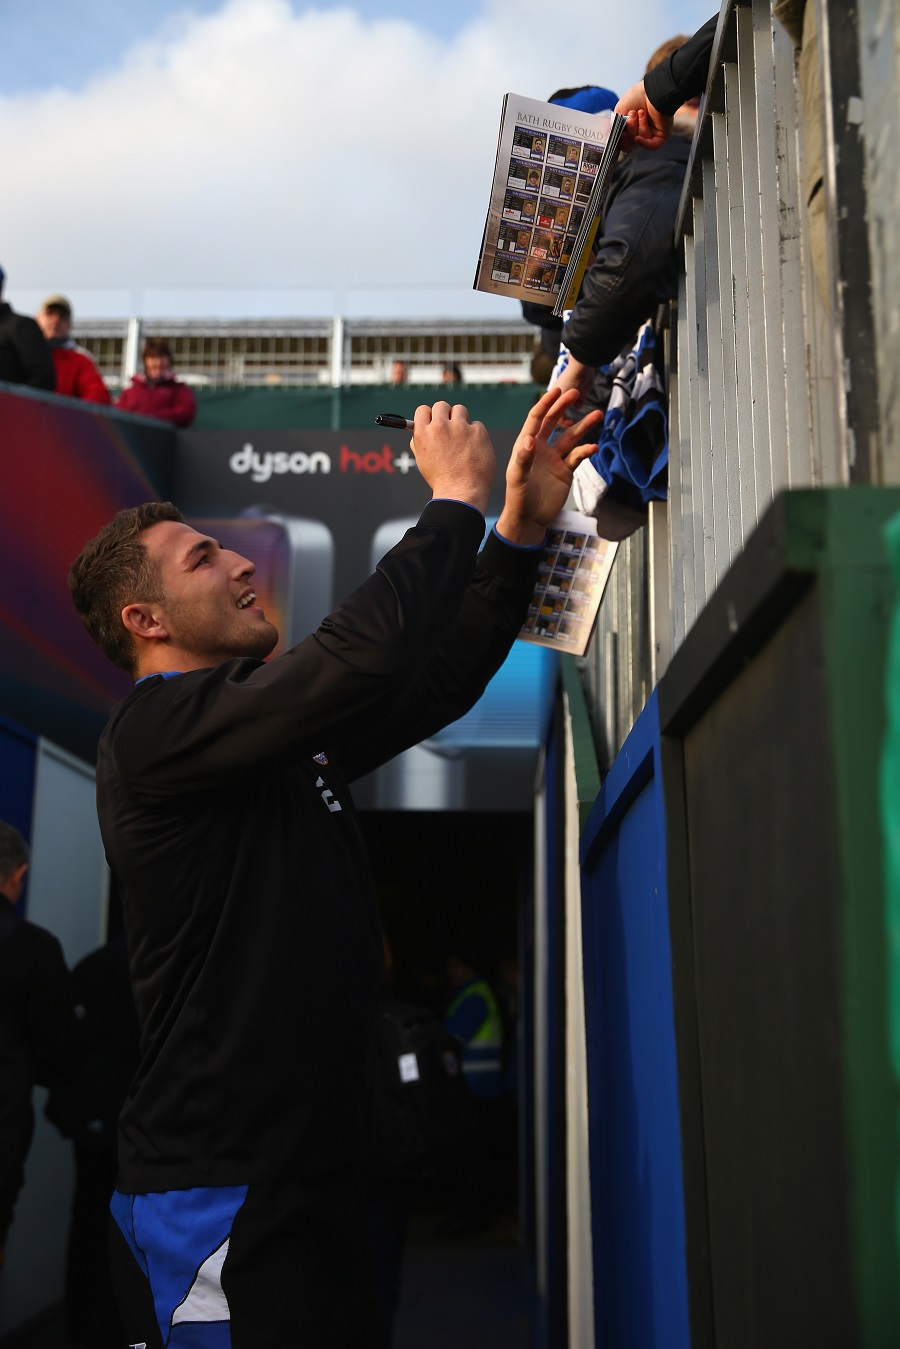 Sam Burgess signs autographs for his adoring public ahead of Bath's match with Wasps at the Rec